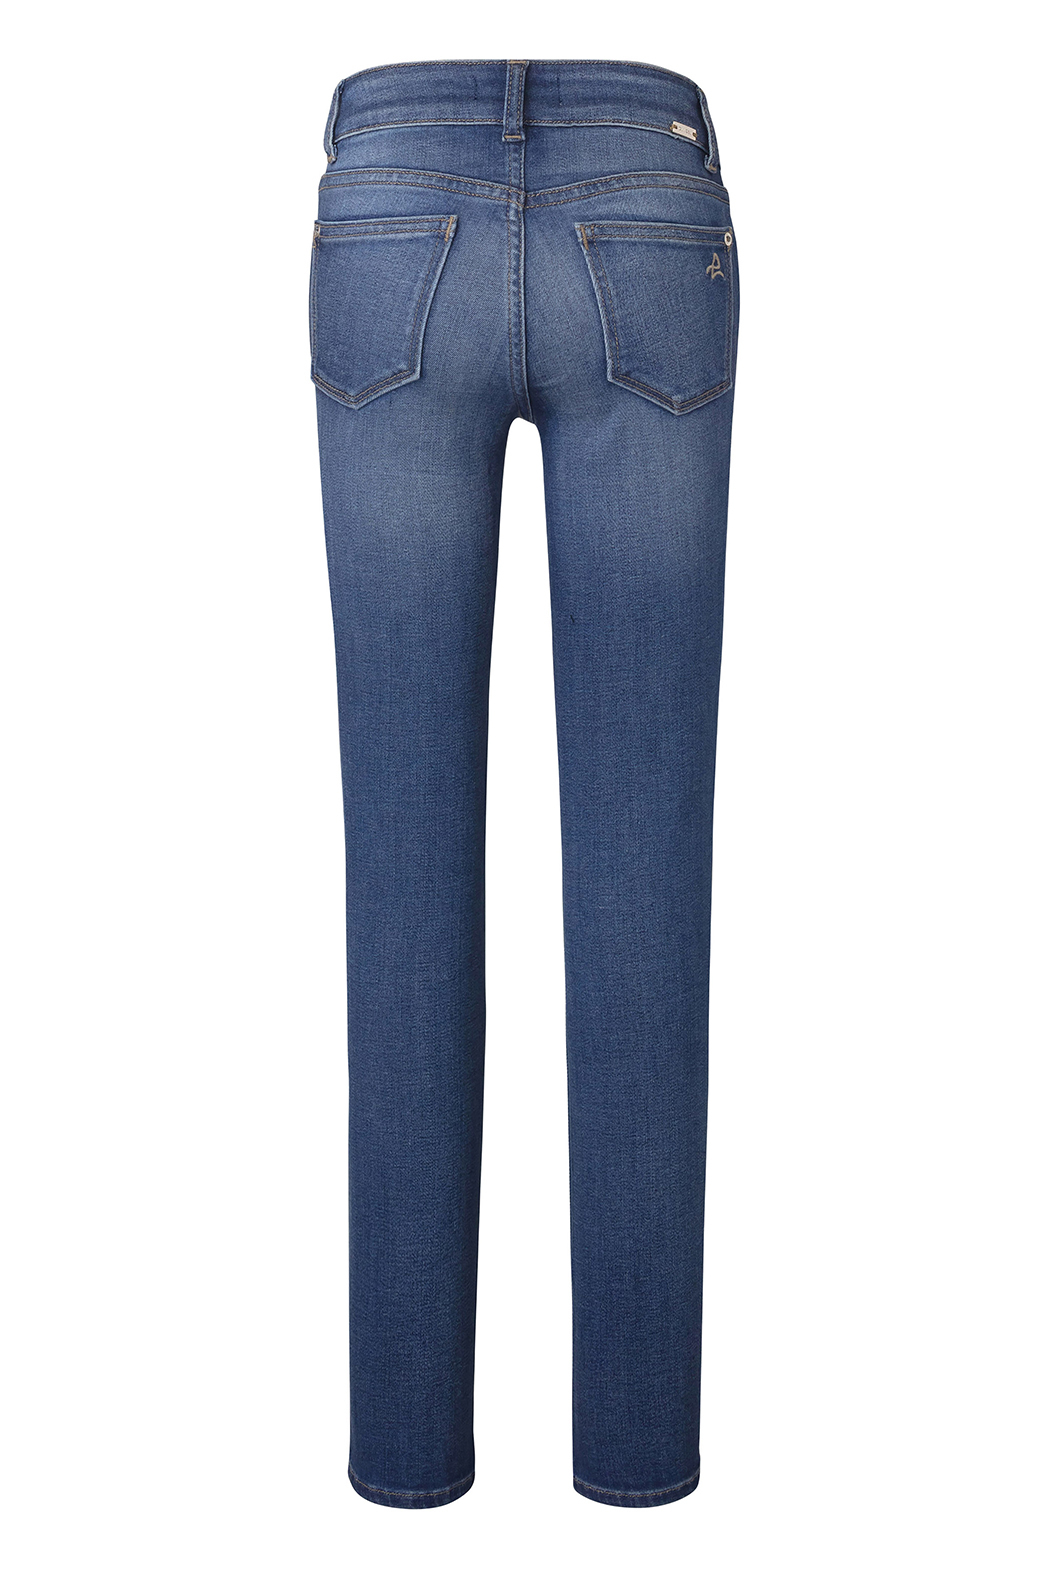 DL1961 Chloe Skinny Youth Jeans Parula - Front Full Image